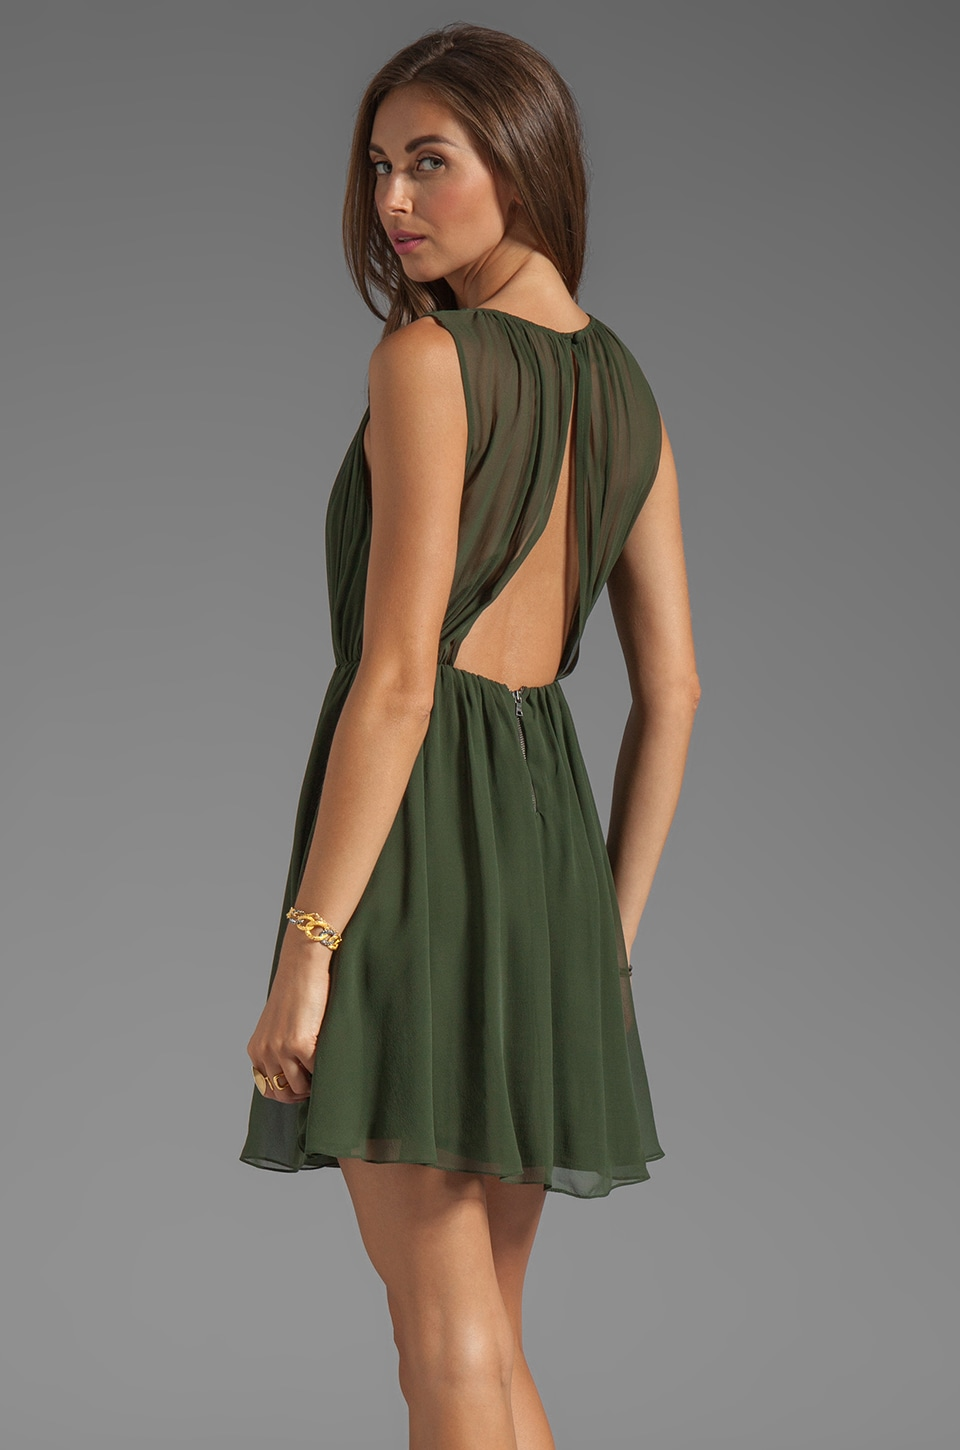 Alice + Olivia Halter Flirt Dress in Army